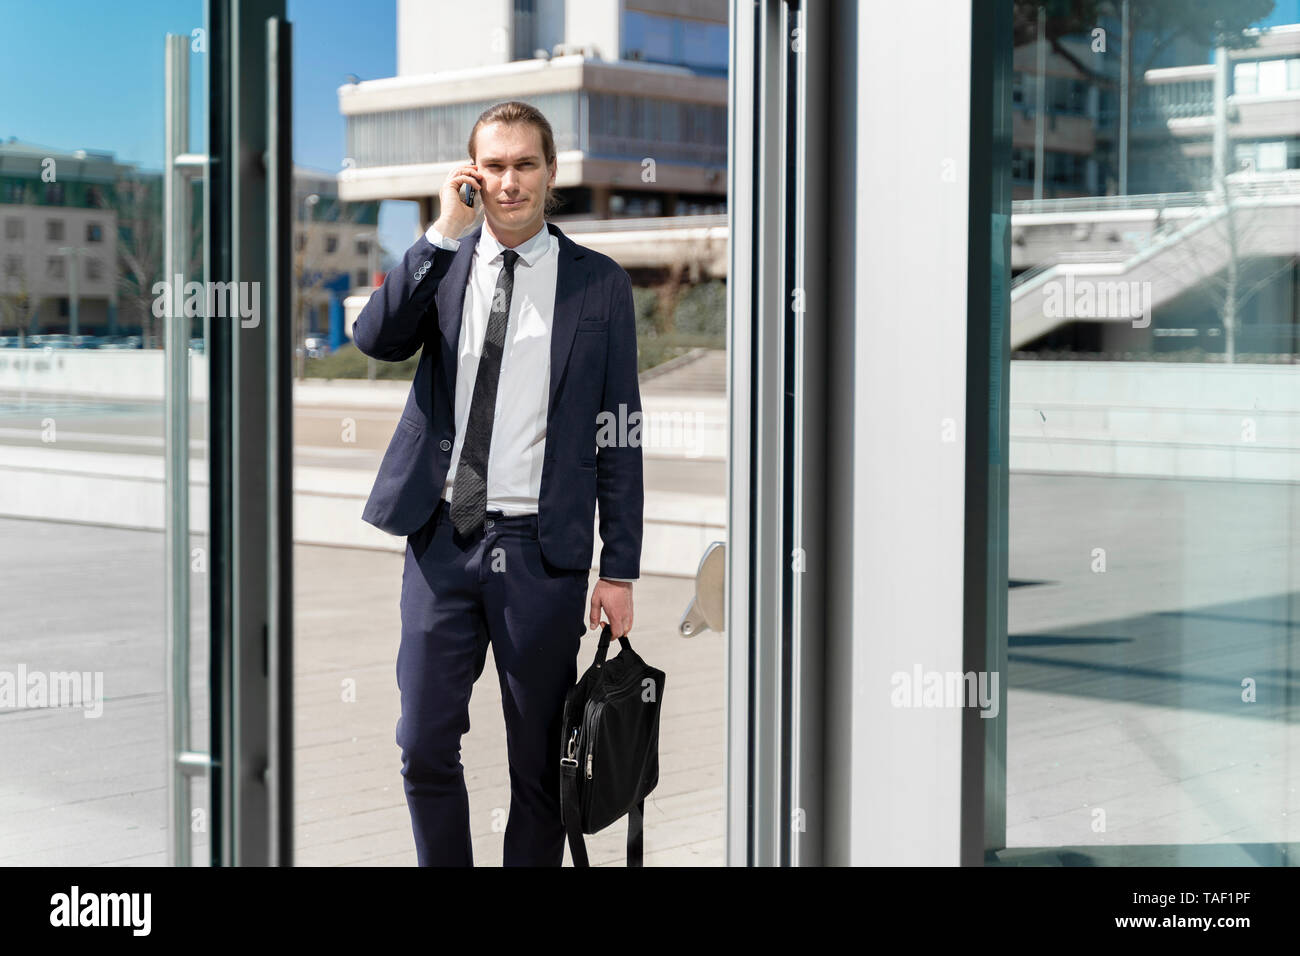 Italy, Florence, young businessman on smartphone outdoor - Stock Image